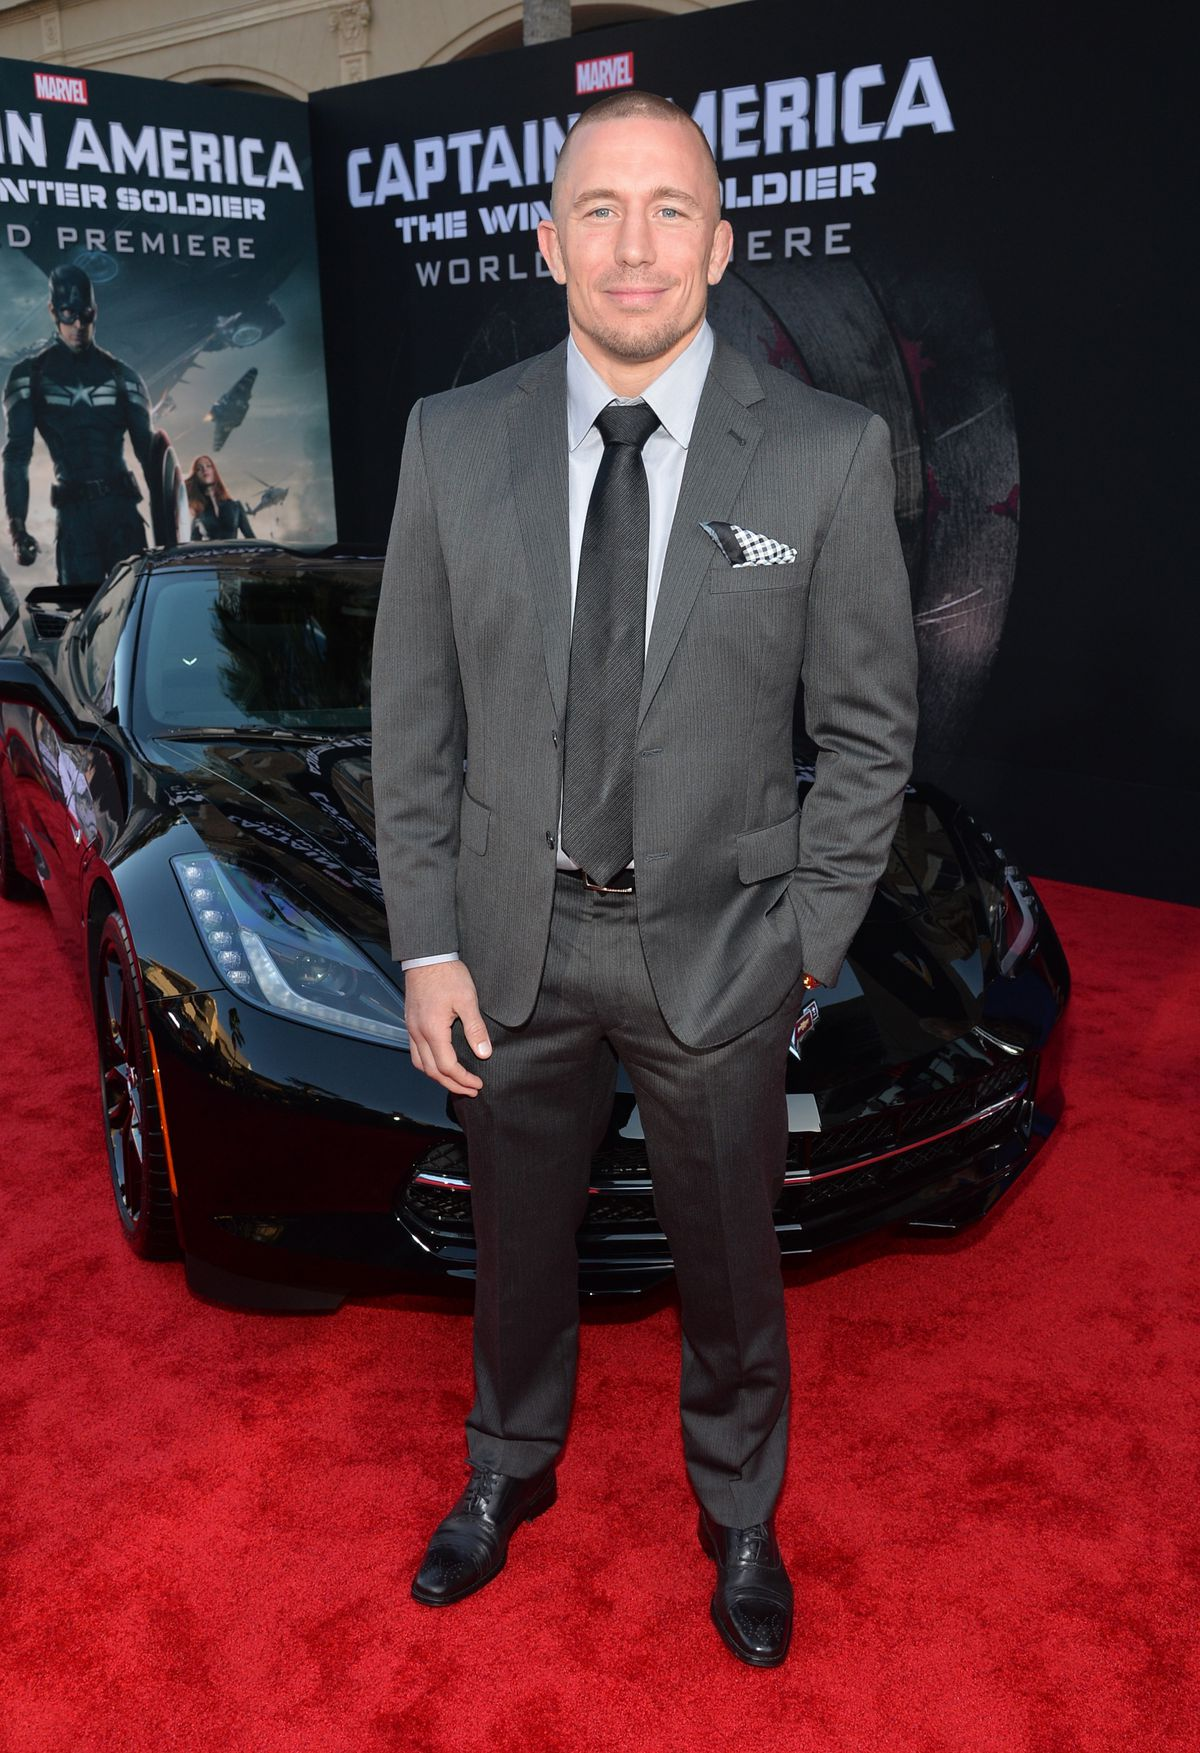 Marvel's 'Captain America: The Winter Soldier' Premiere - Red Carpet